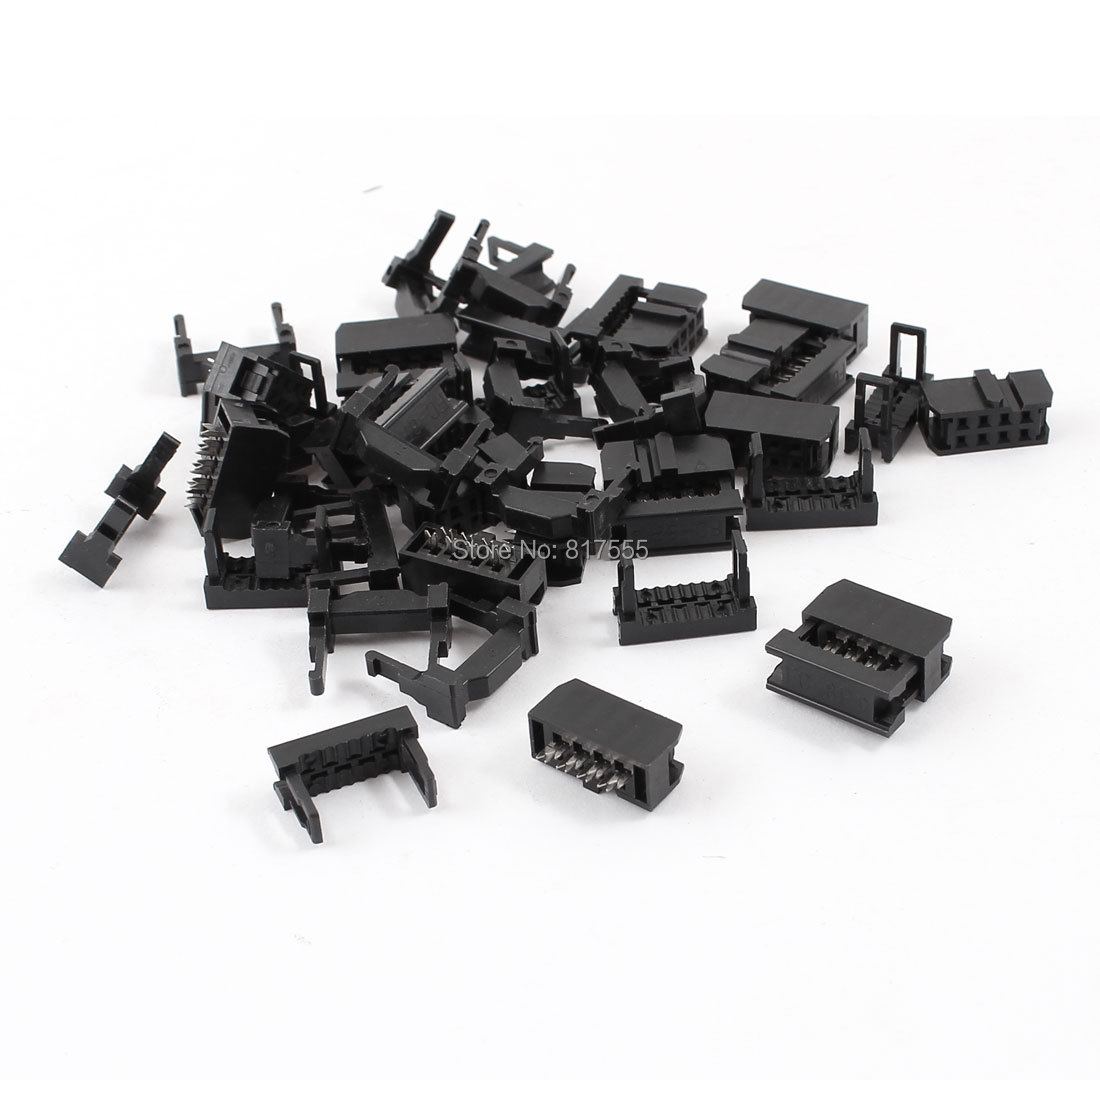 15 x Dual Row IDC Connector FC-8P 2x4Pin Female Header 2.54mm Pitch Discount 50(China (Mainland))